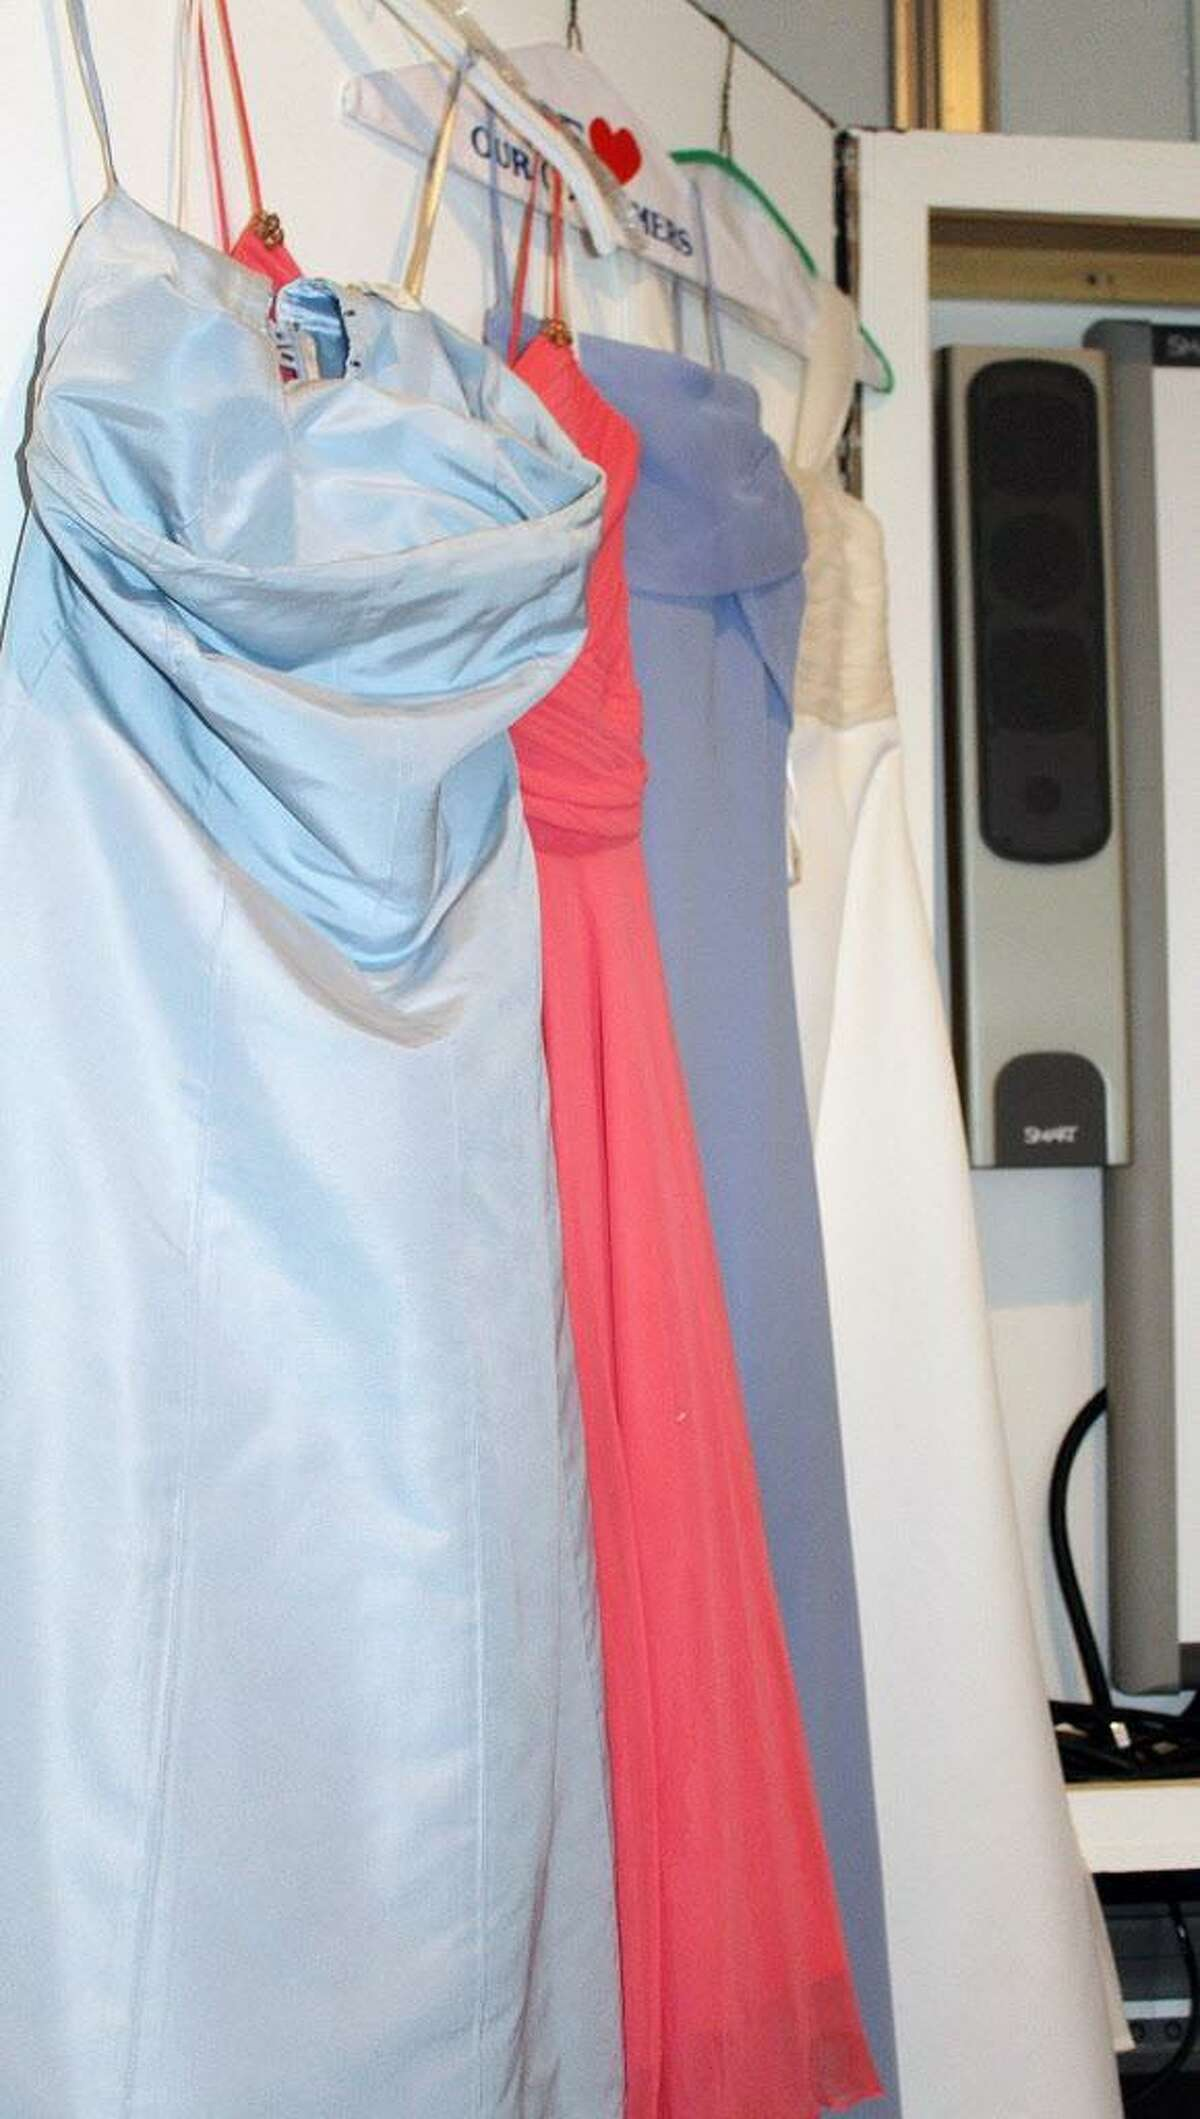 Some of the dresses donated during a prom dress/accessories drive at the youth depot in Darien, CT on Jan. 14, 2017.